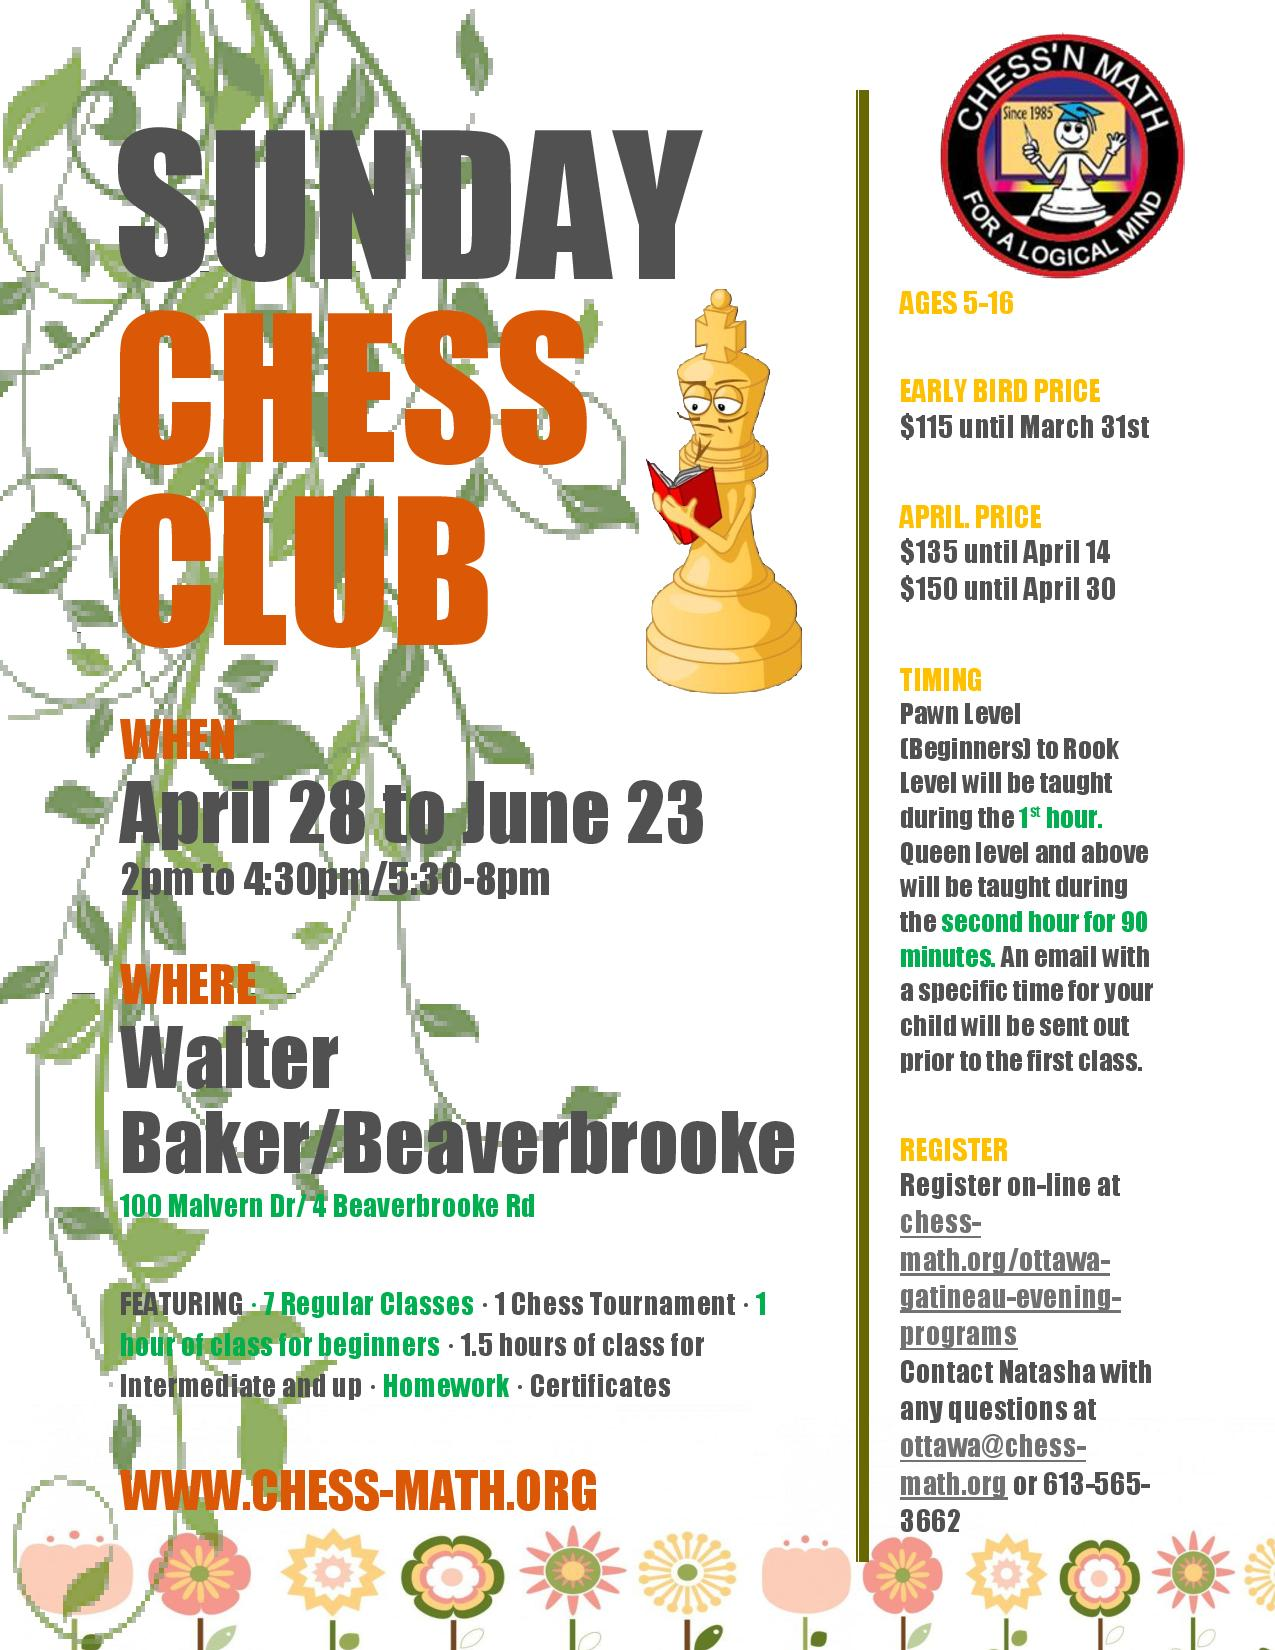 Kanata Spring Chess Club 2019